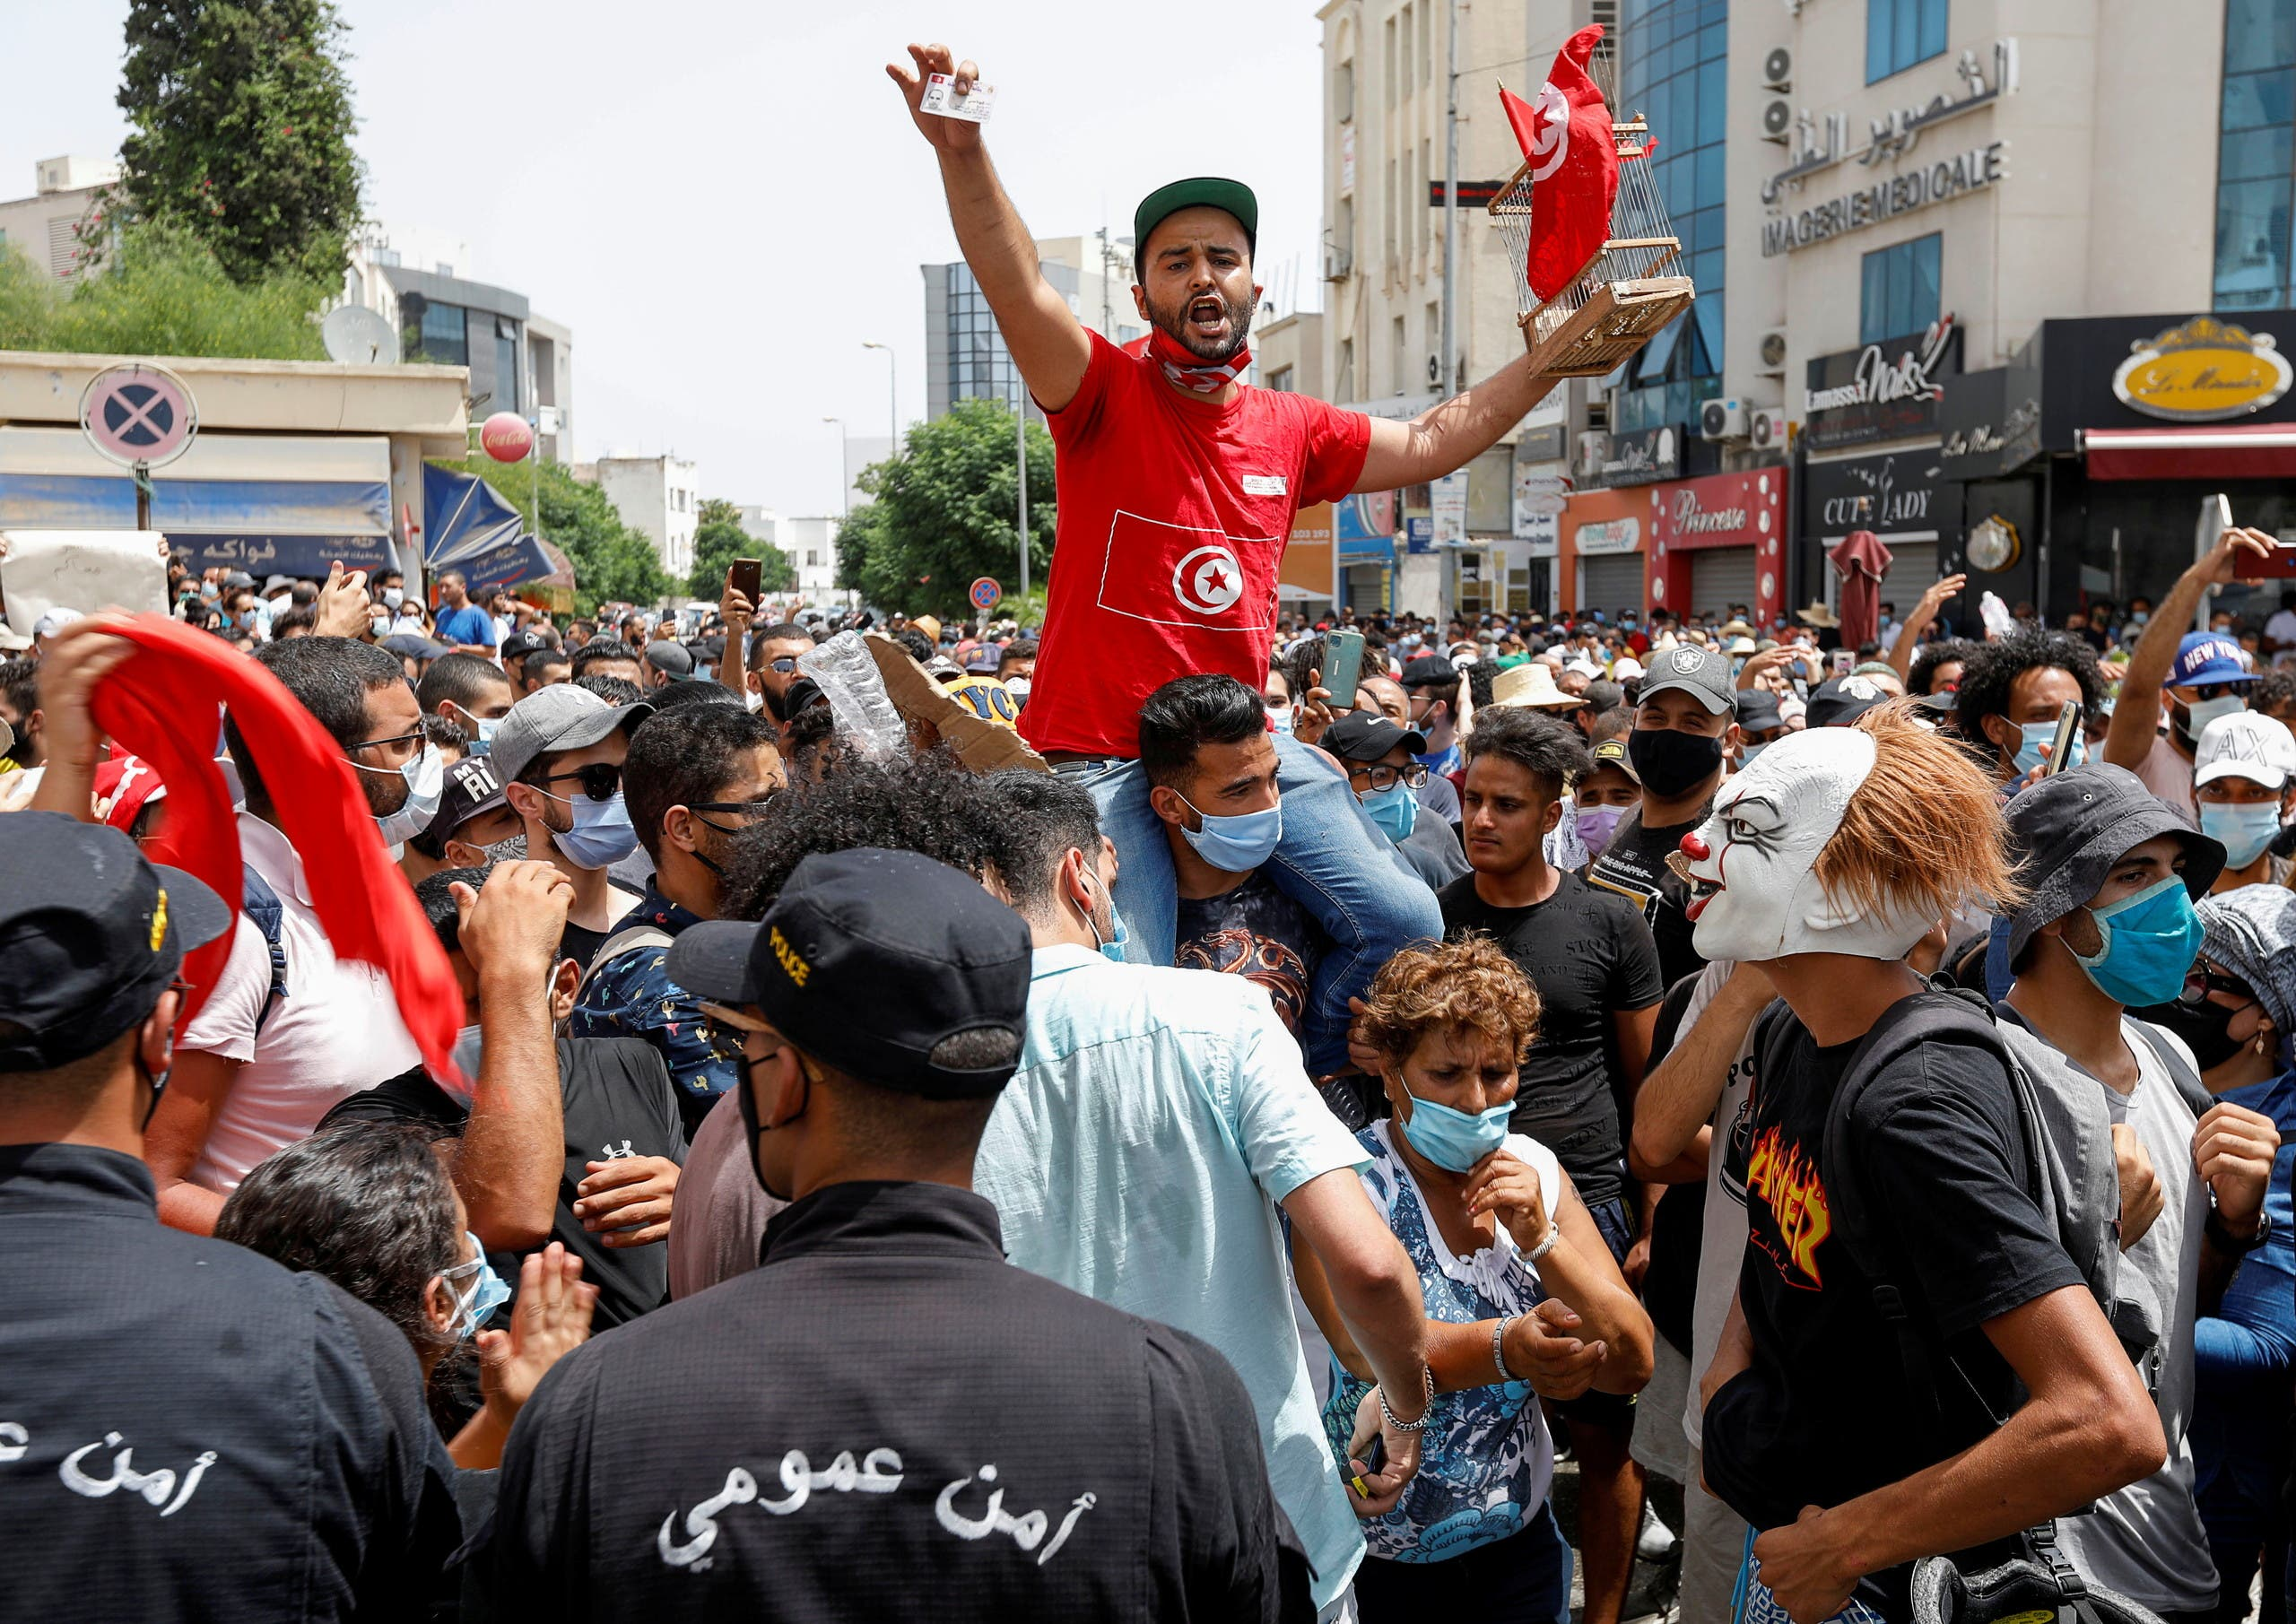 Demonstrators gather in front of police officers standing guard during an anti-government protest in Tunis, Tunisia, July 25, 2021. (Reuters)